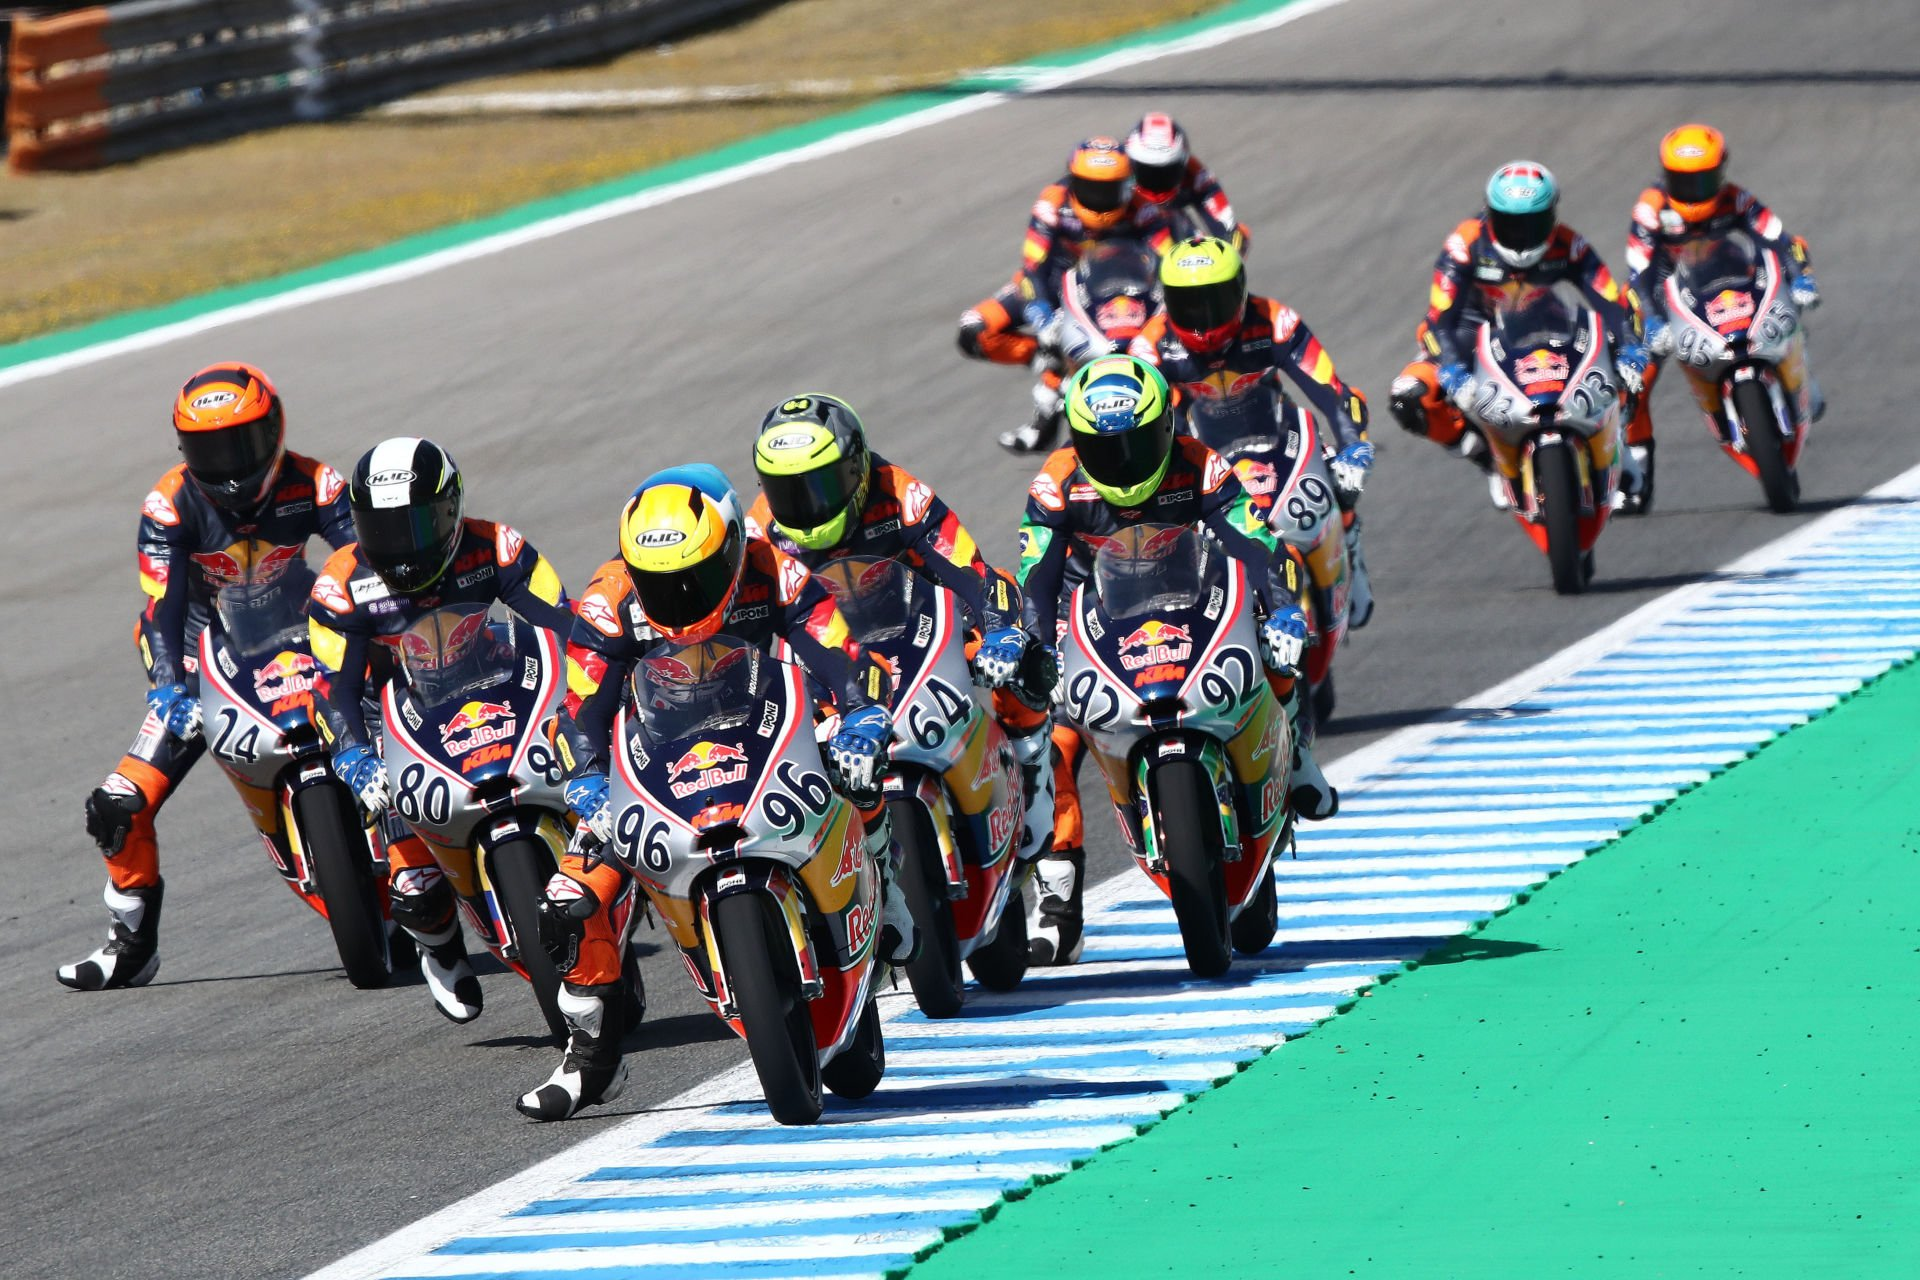 David Holgado (96) leads Red Bull MotoGP Rookies Cup Race One. Photo courtesy Red Bull.